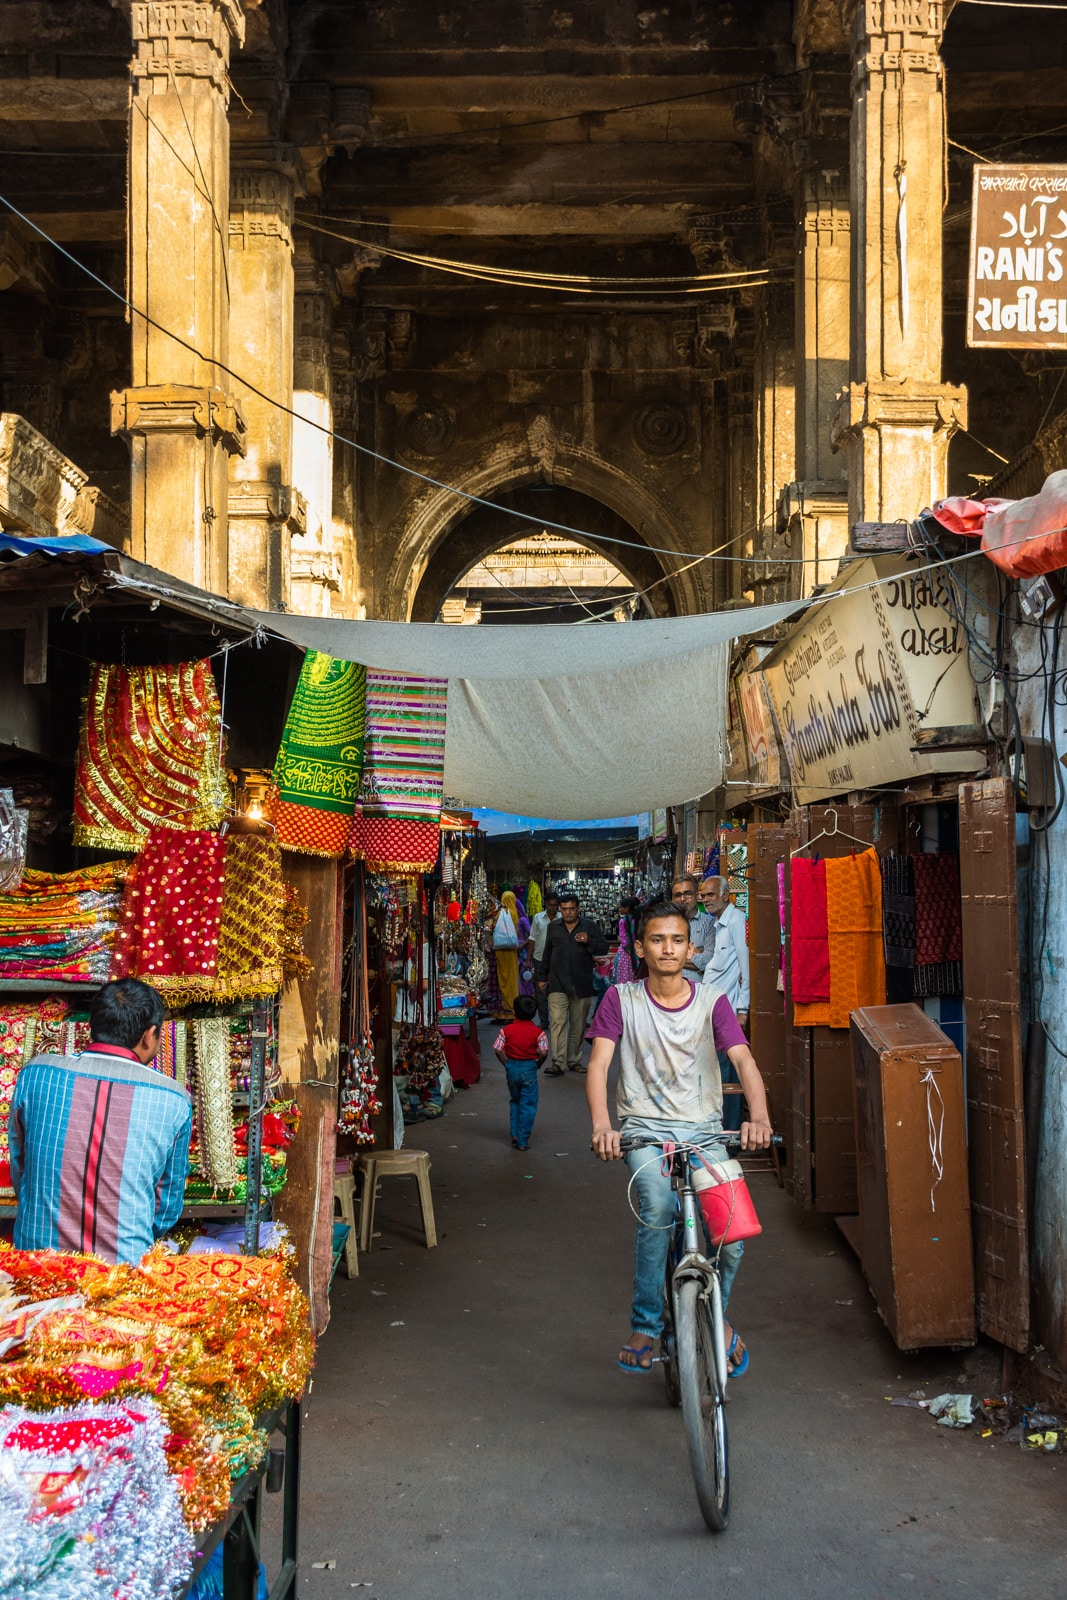 A young Indian boy riding a bicycle through a market street in Ahmedabad